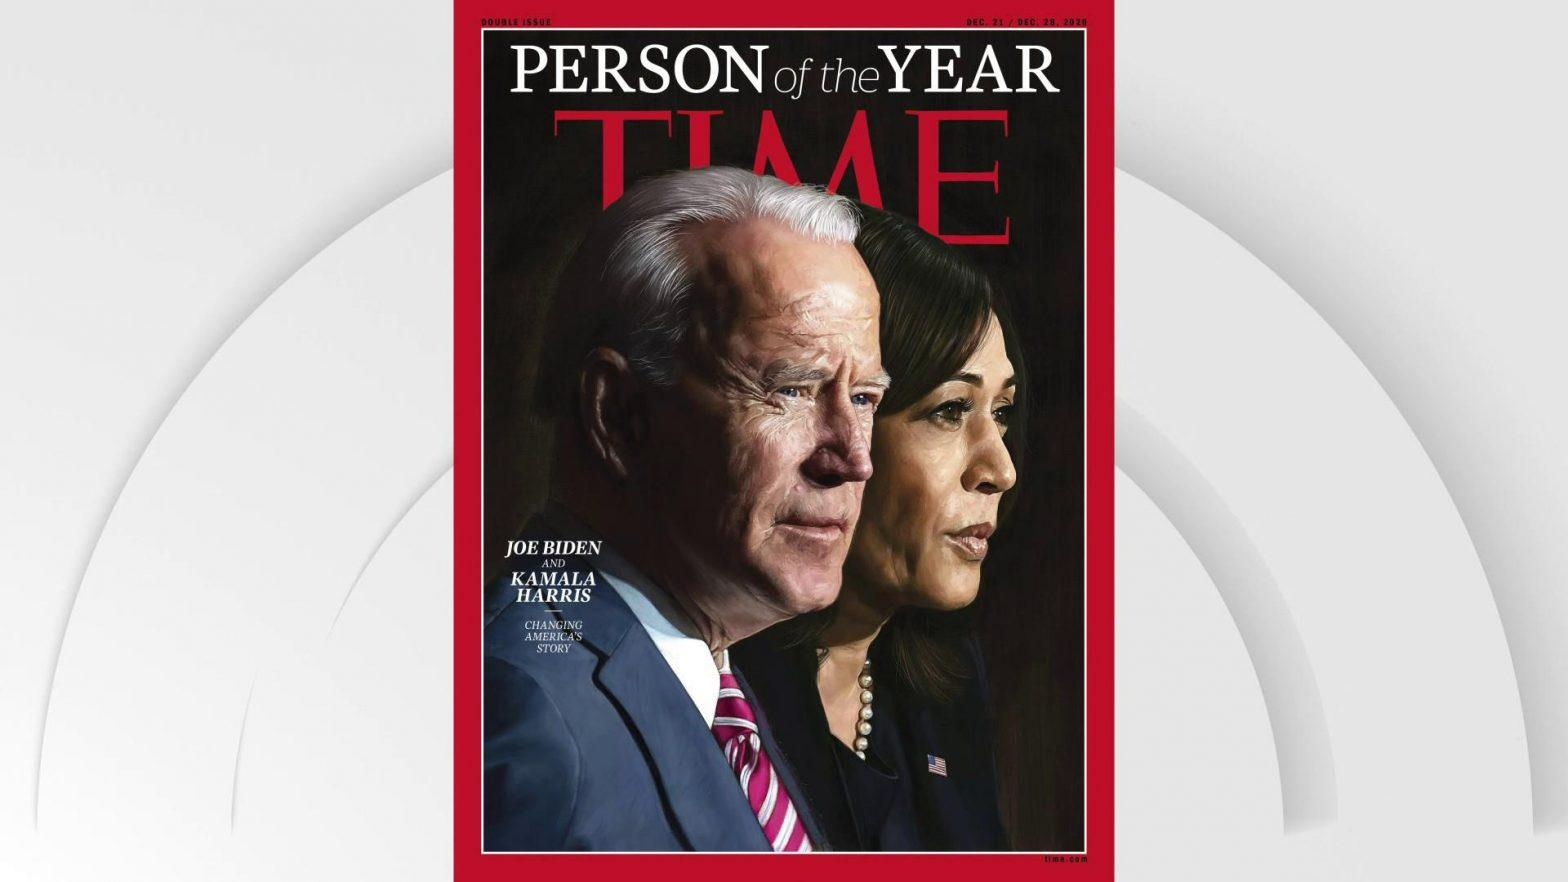 Joe Biden, Kamala Harris jointly named Time's 'Person of the Year' 2020_40.1